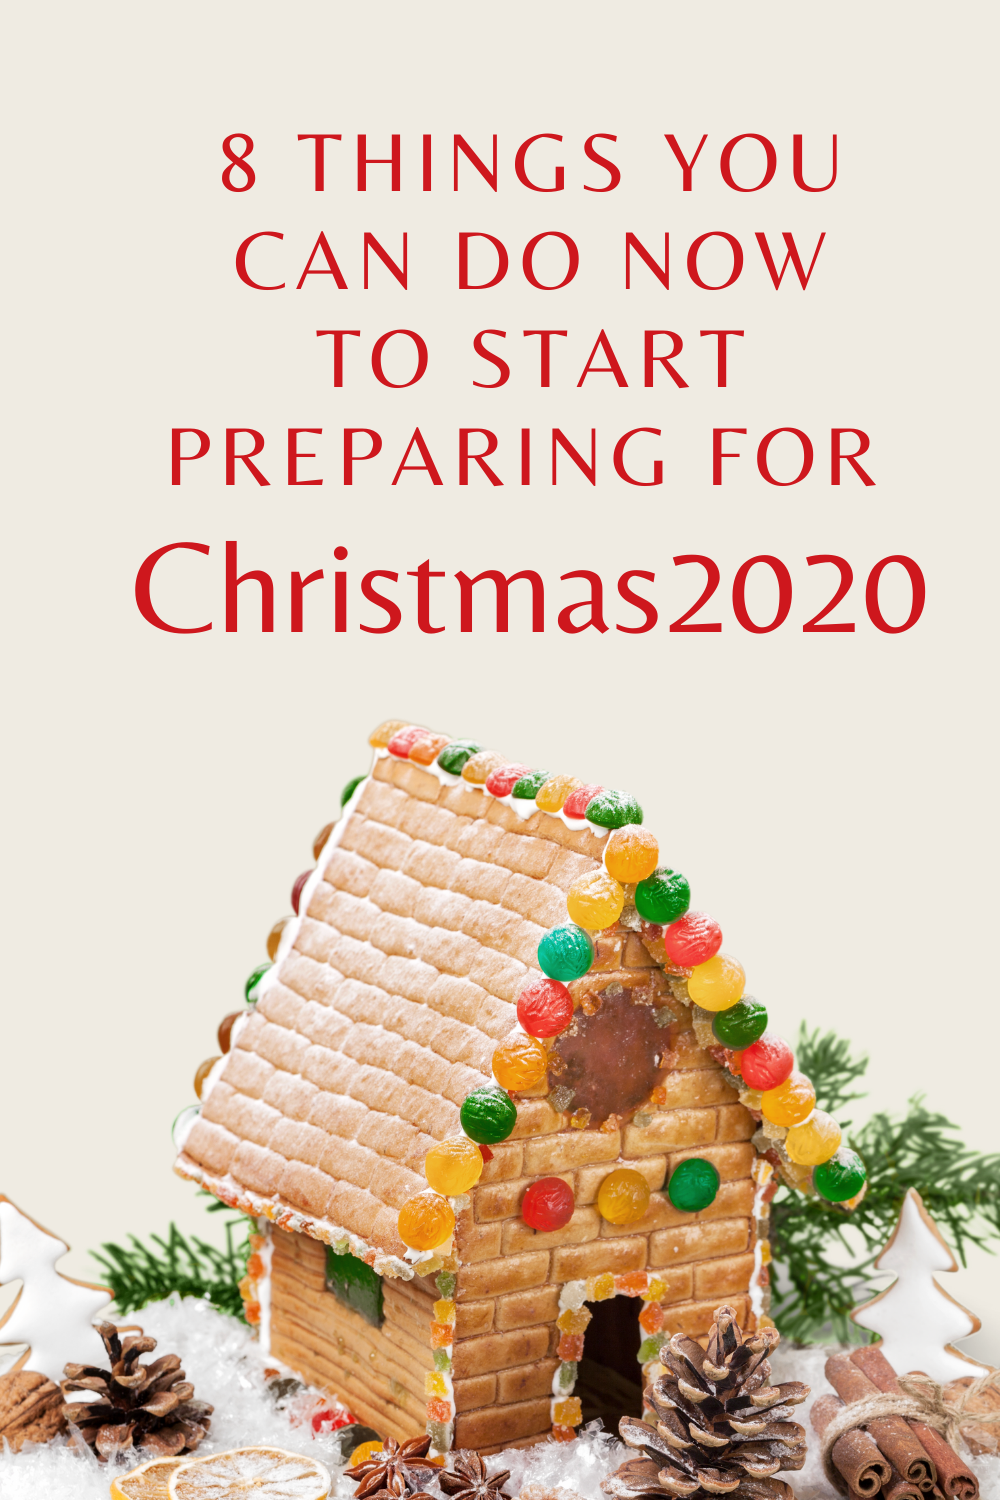 8 things you can do now to get ready for Christmas 2020 #terrificwords